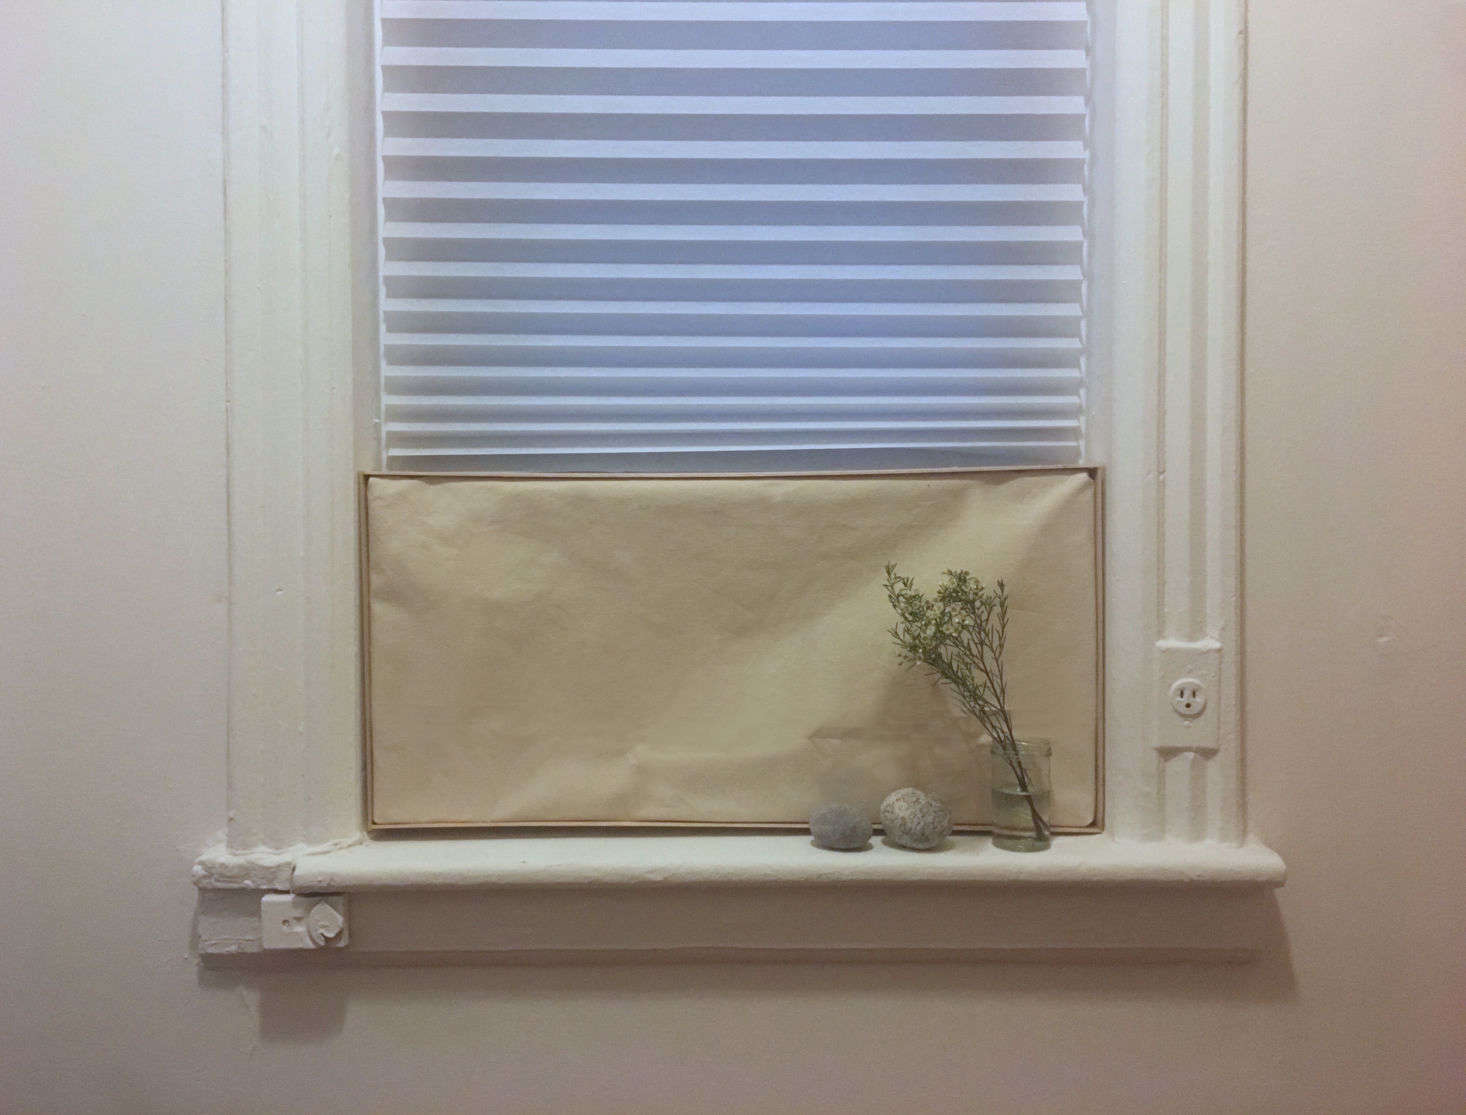 If you have a window air conditioner unit, chances are, you don't exactly love the way it looks. Once this heat wave is over, consider concealing it with this easy DIY Cover. Annie shows you how: DIY: A Simple, Easy Cover for an Ugly Window Air Conditioner (for $15).